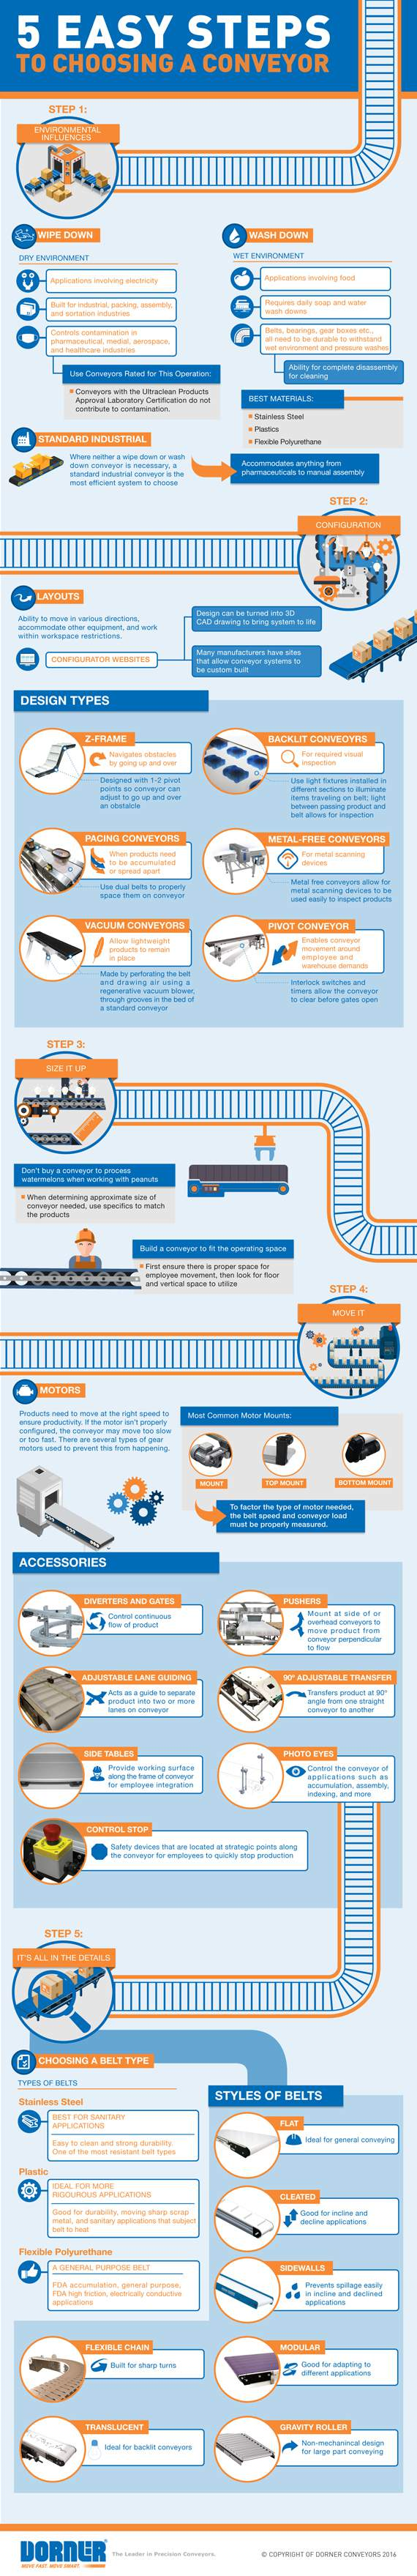 Steps to Choosing a Conveyor